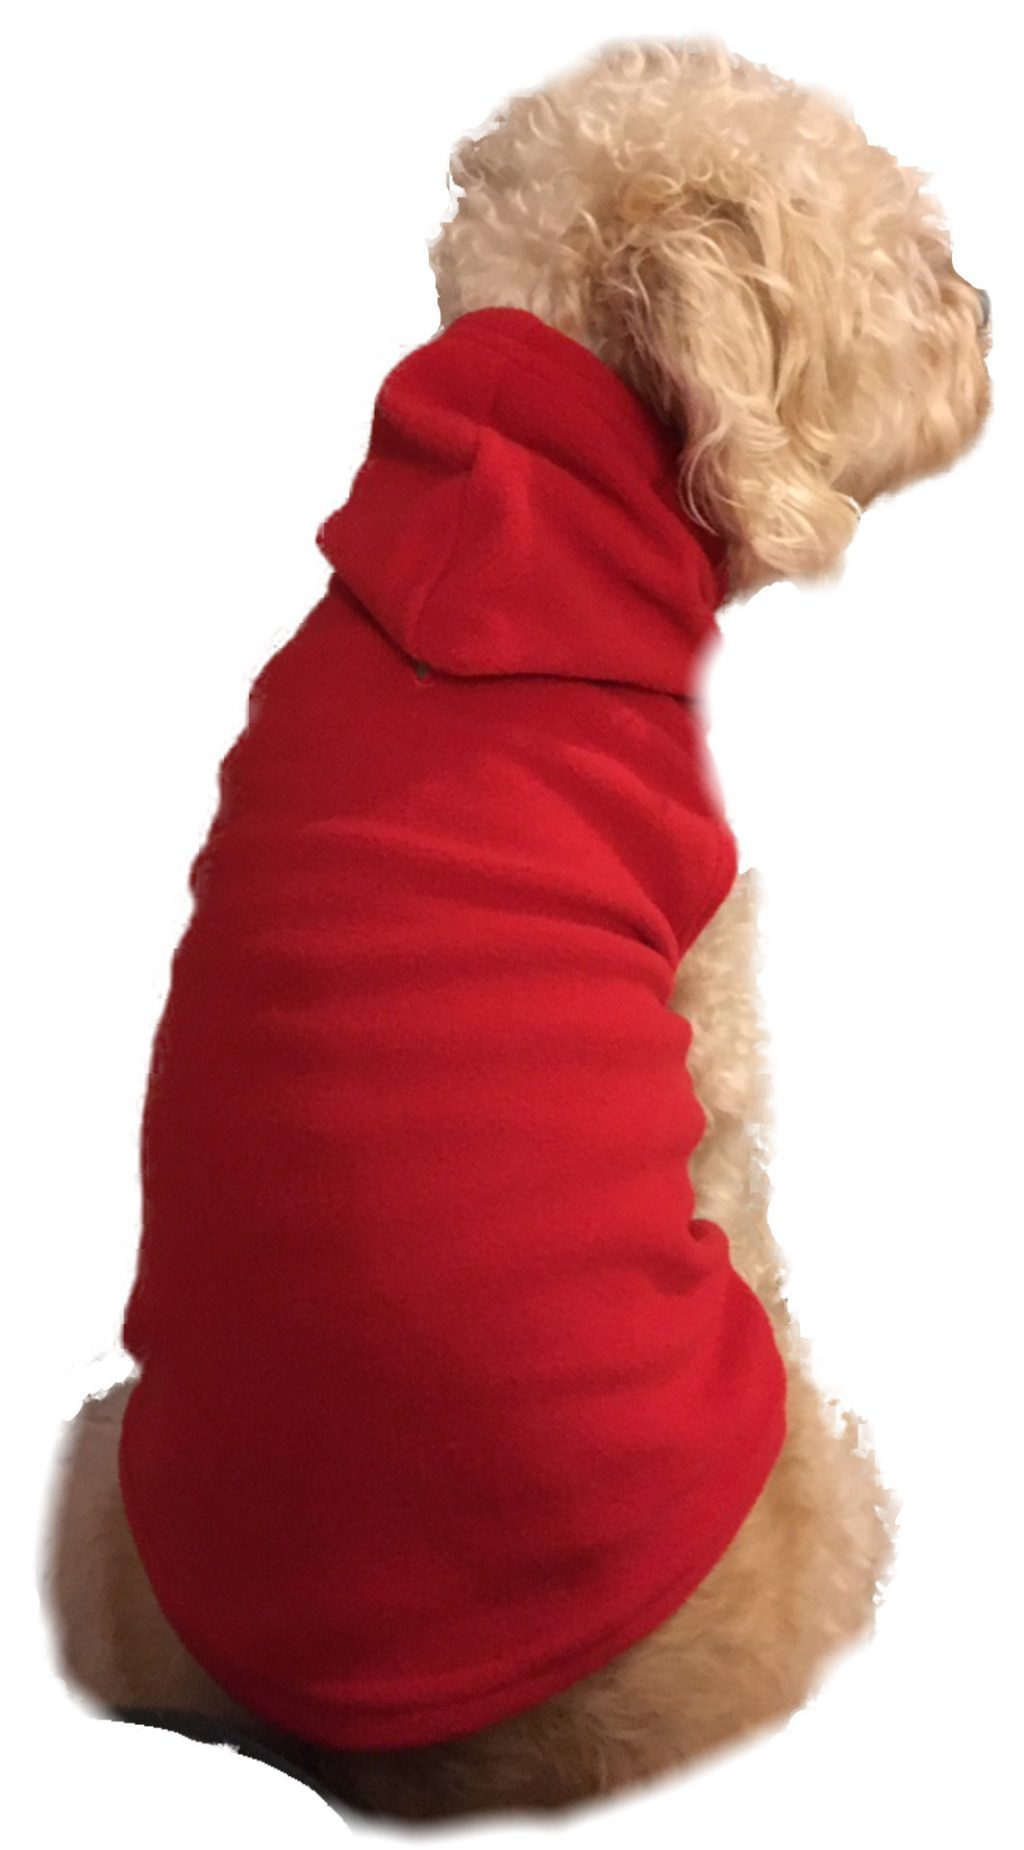 Red Fleece Hoodie for Pets. These fleece hoodie are the perfect comfort wear for your dogs, and cats too! For ultimate comfort, our hoodies have large arm holes instead of sleeves which your pet will love you for. Big Feet PJs hoodies are made from premium micro polar anti-pill fleece and are available in sizes small to extra large.